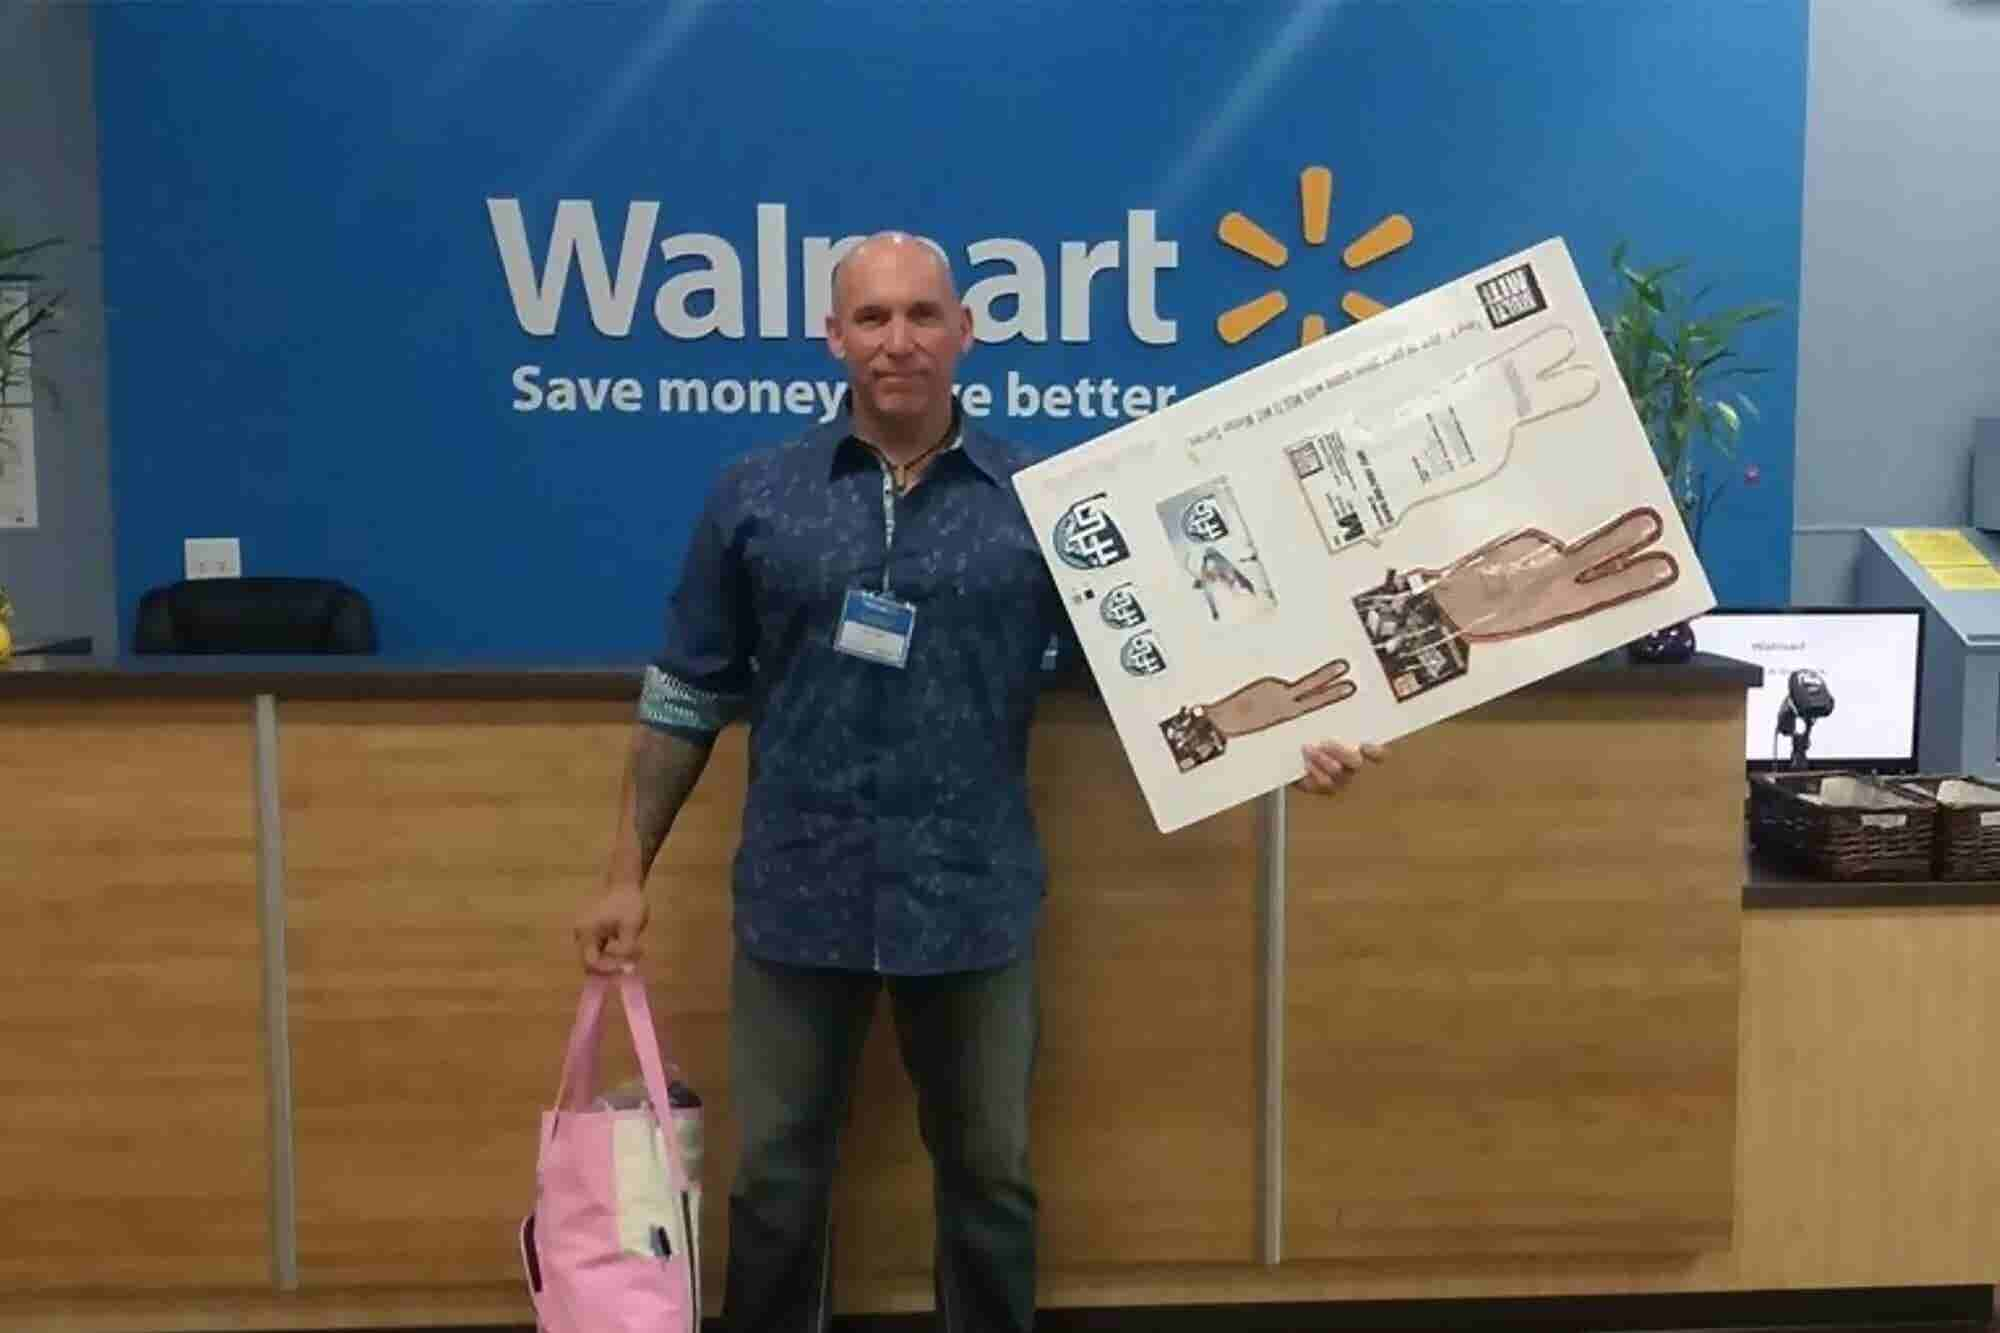 This Entrepreneur Drove Across the Country to Sell His Product to Walmart